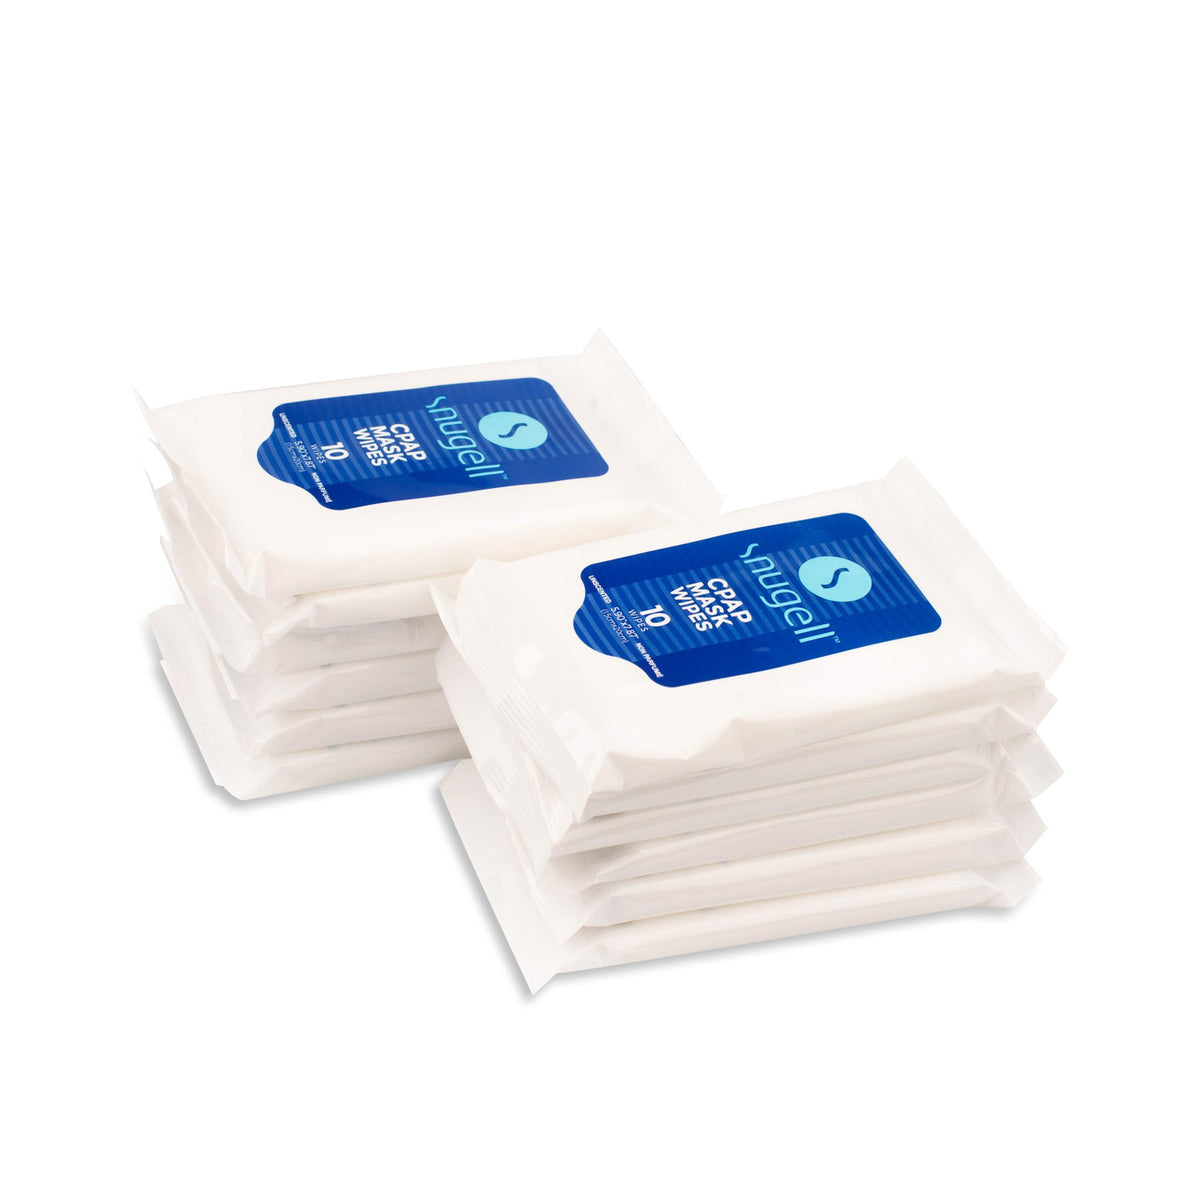 Snugell Travel Wipes Stacked.